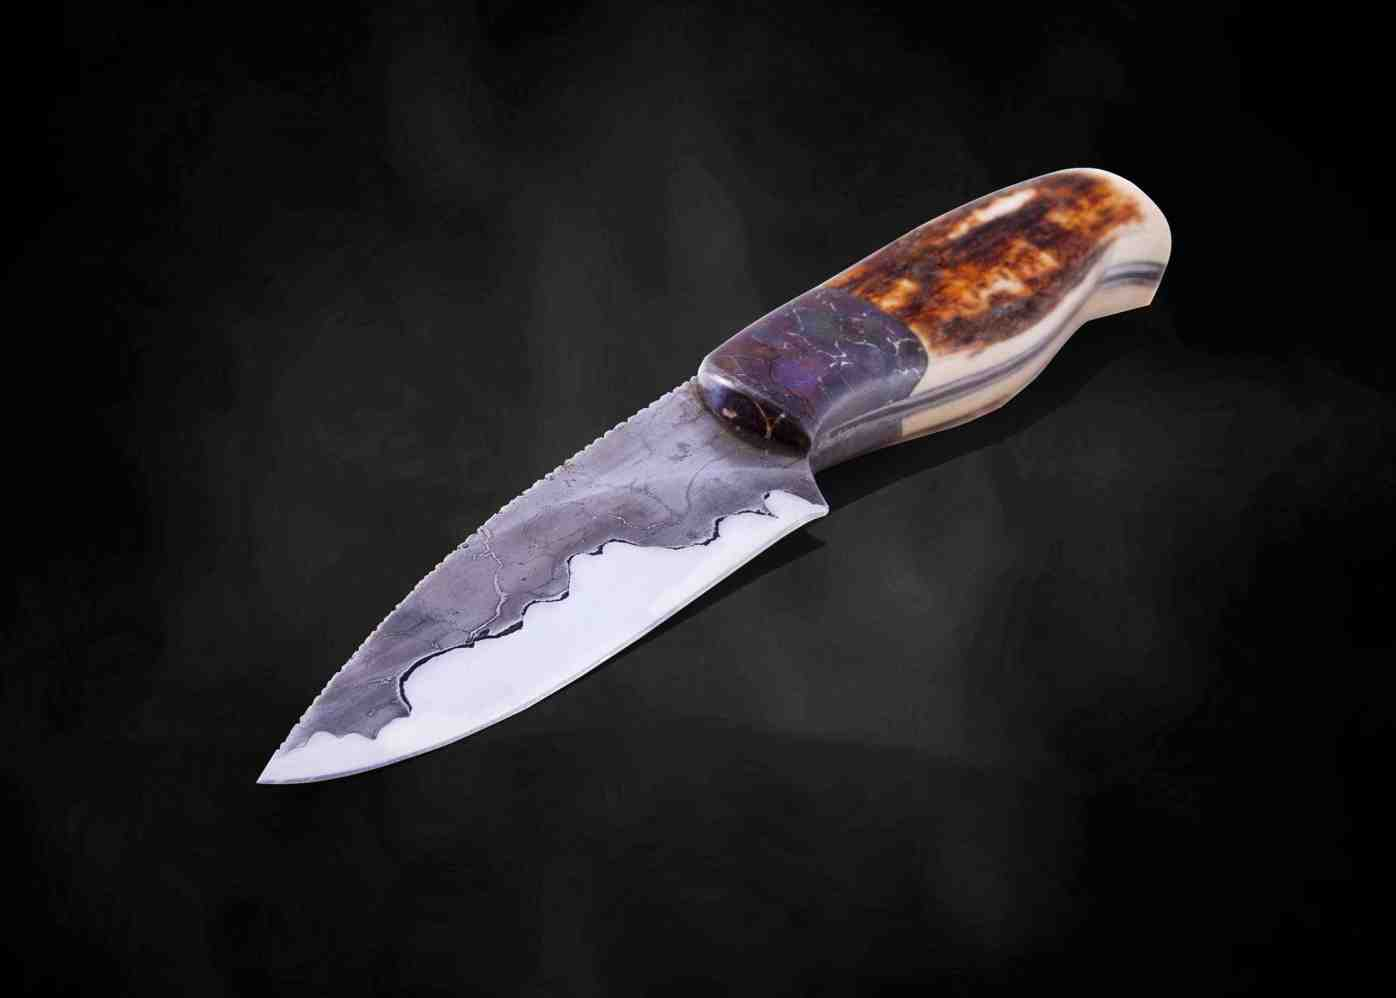 Knife Heat Treating Services